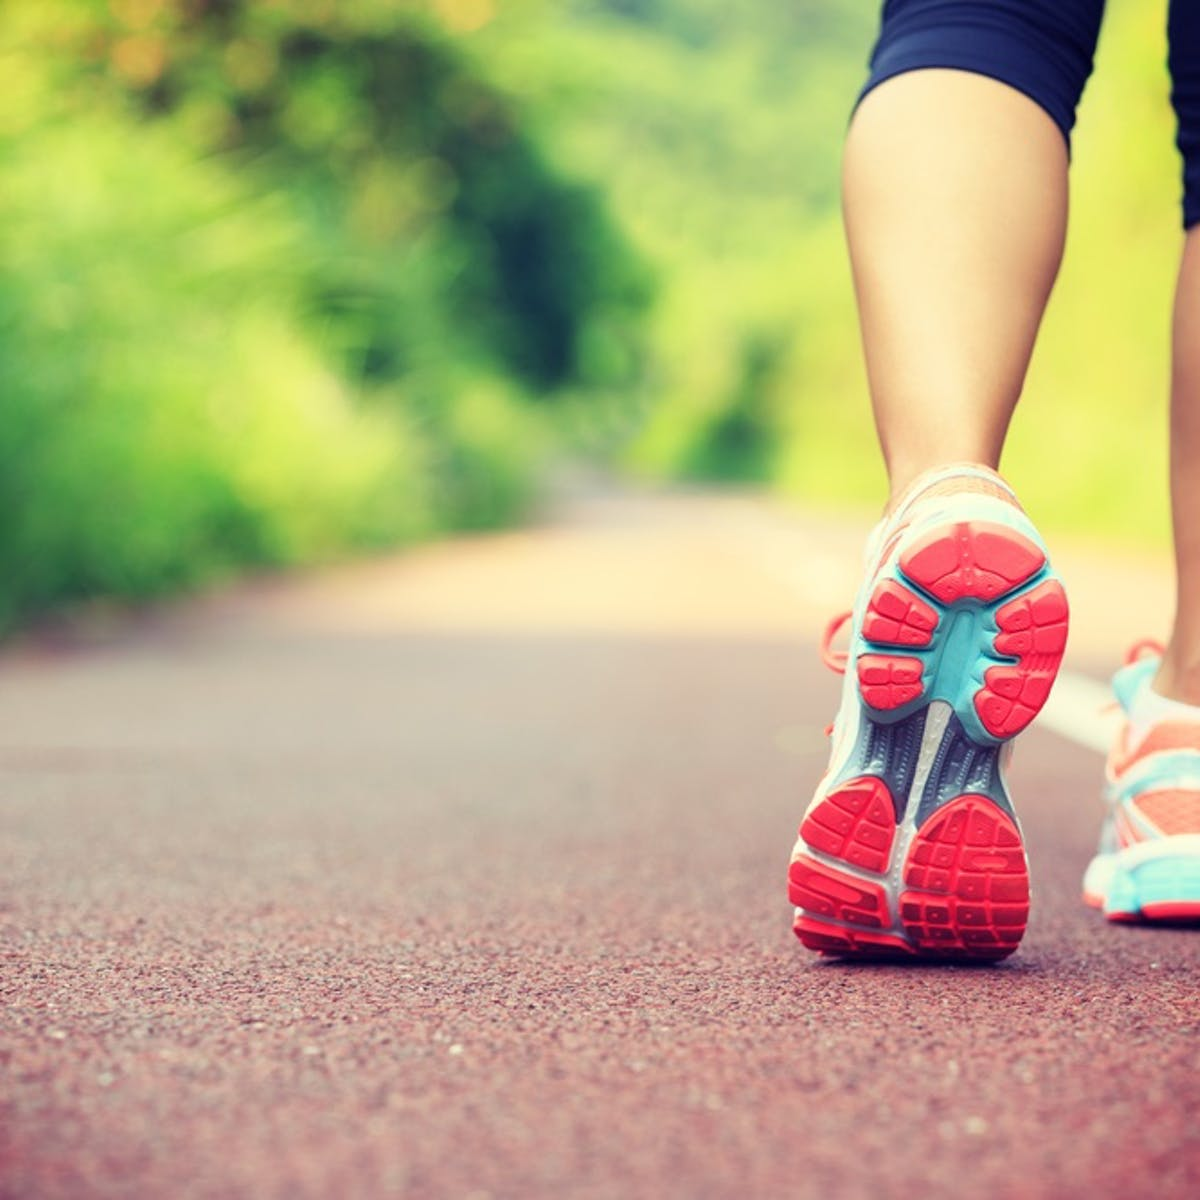 Thinking of taking a walk everyday? Six reasons why it's good for you